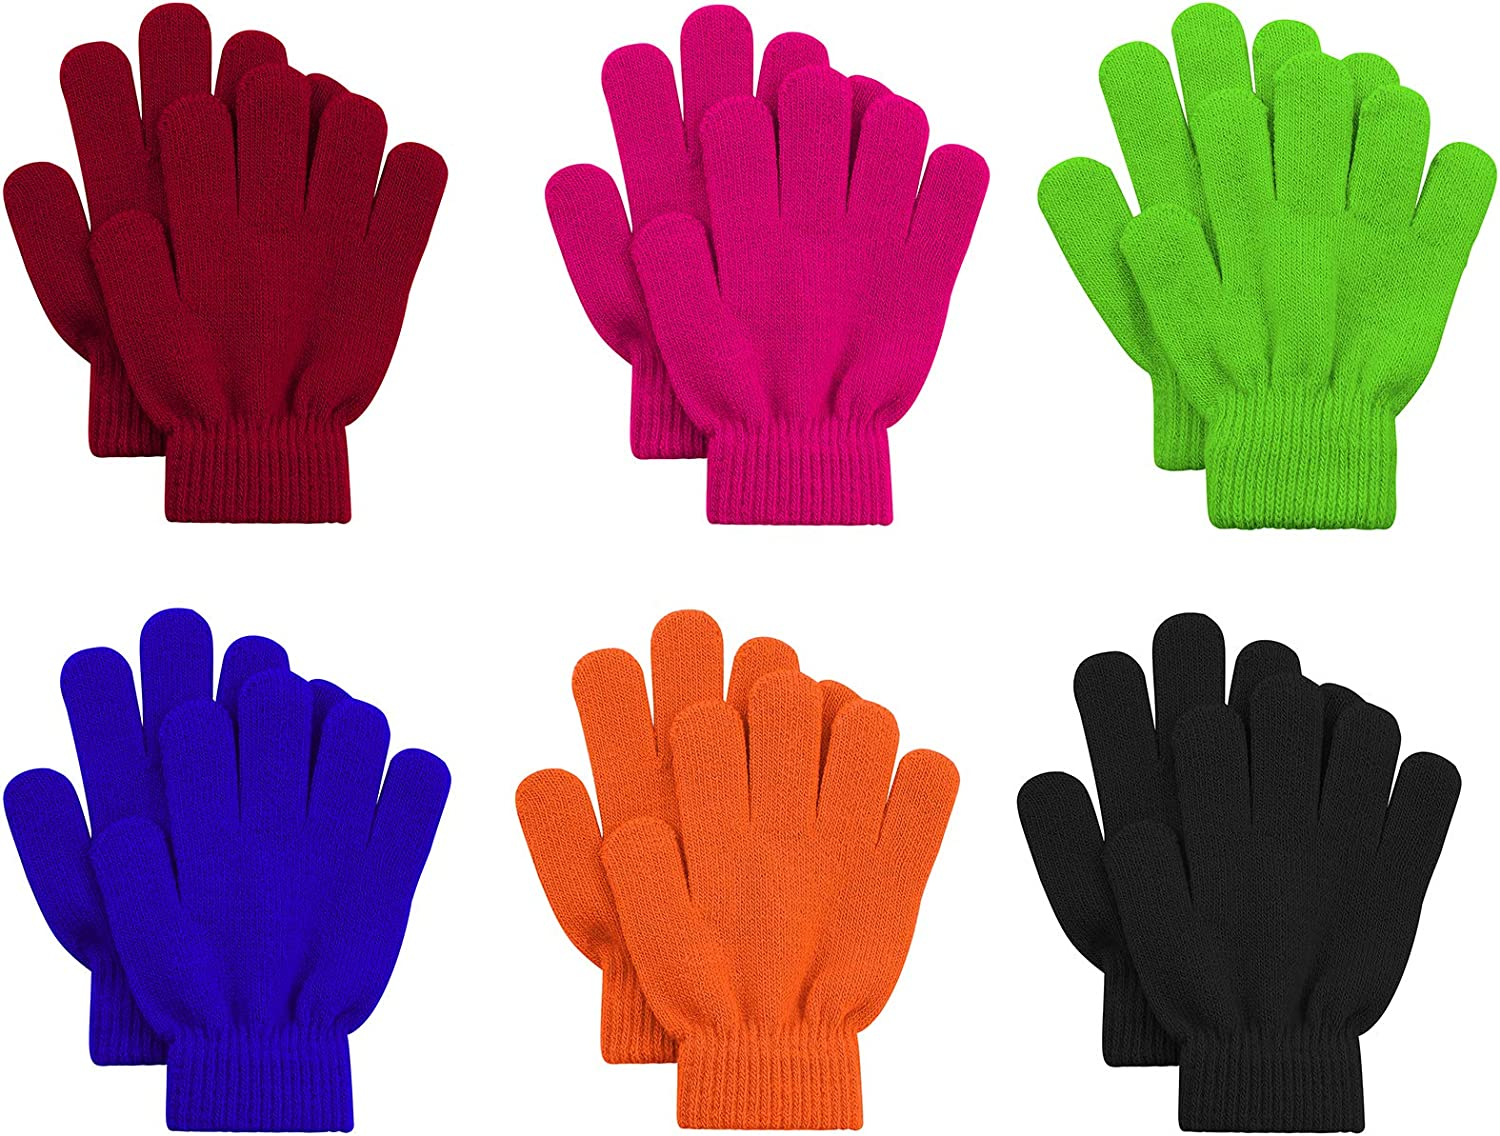 6 Pairs Kids Magic Gloves Winter Warm Full Fingers Gloves Soft Knitted Mittens for Baby Boys Girls